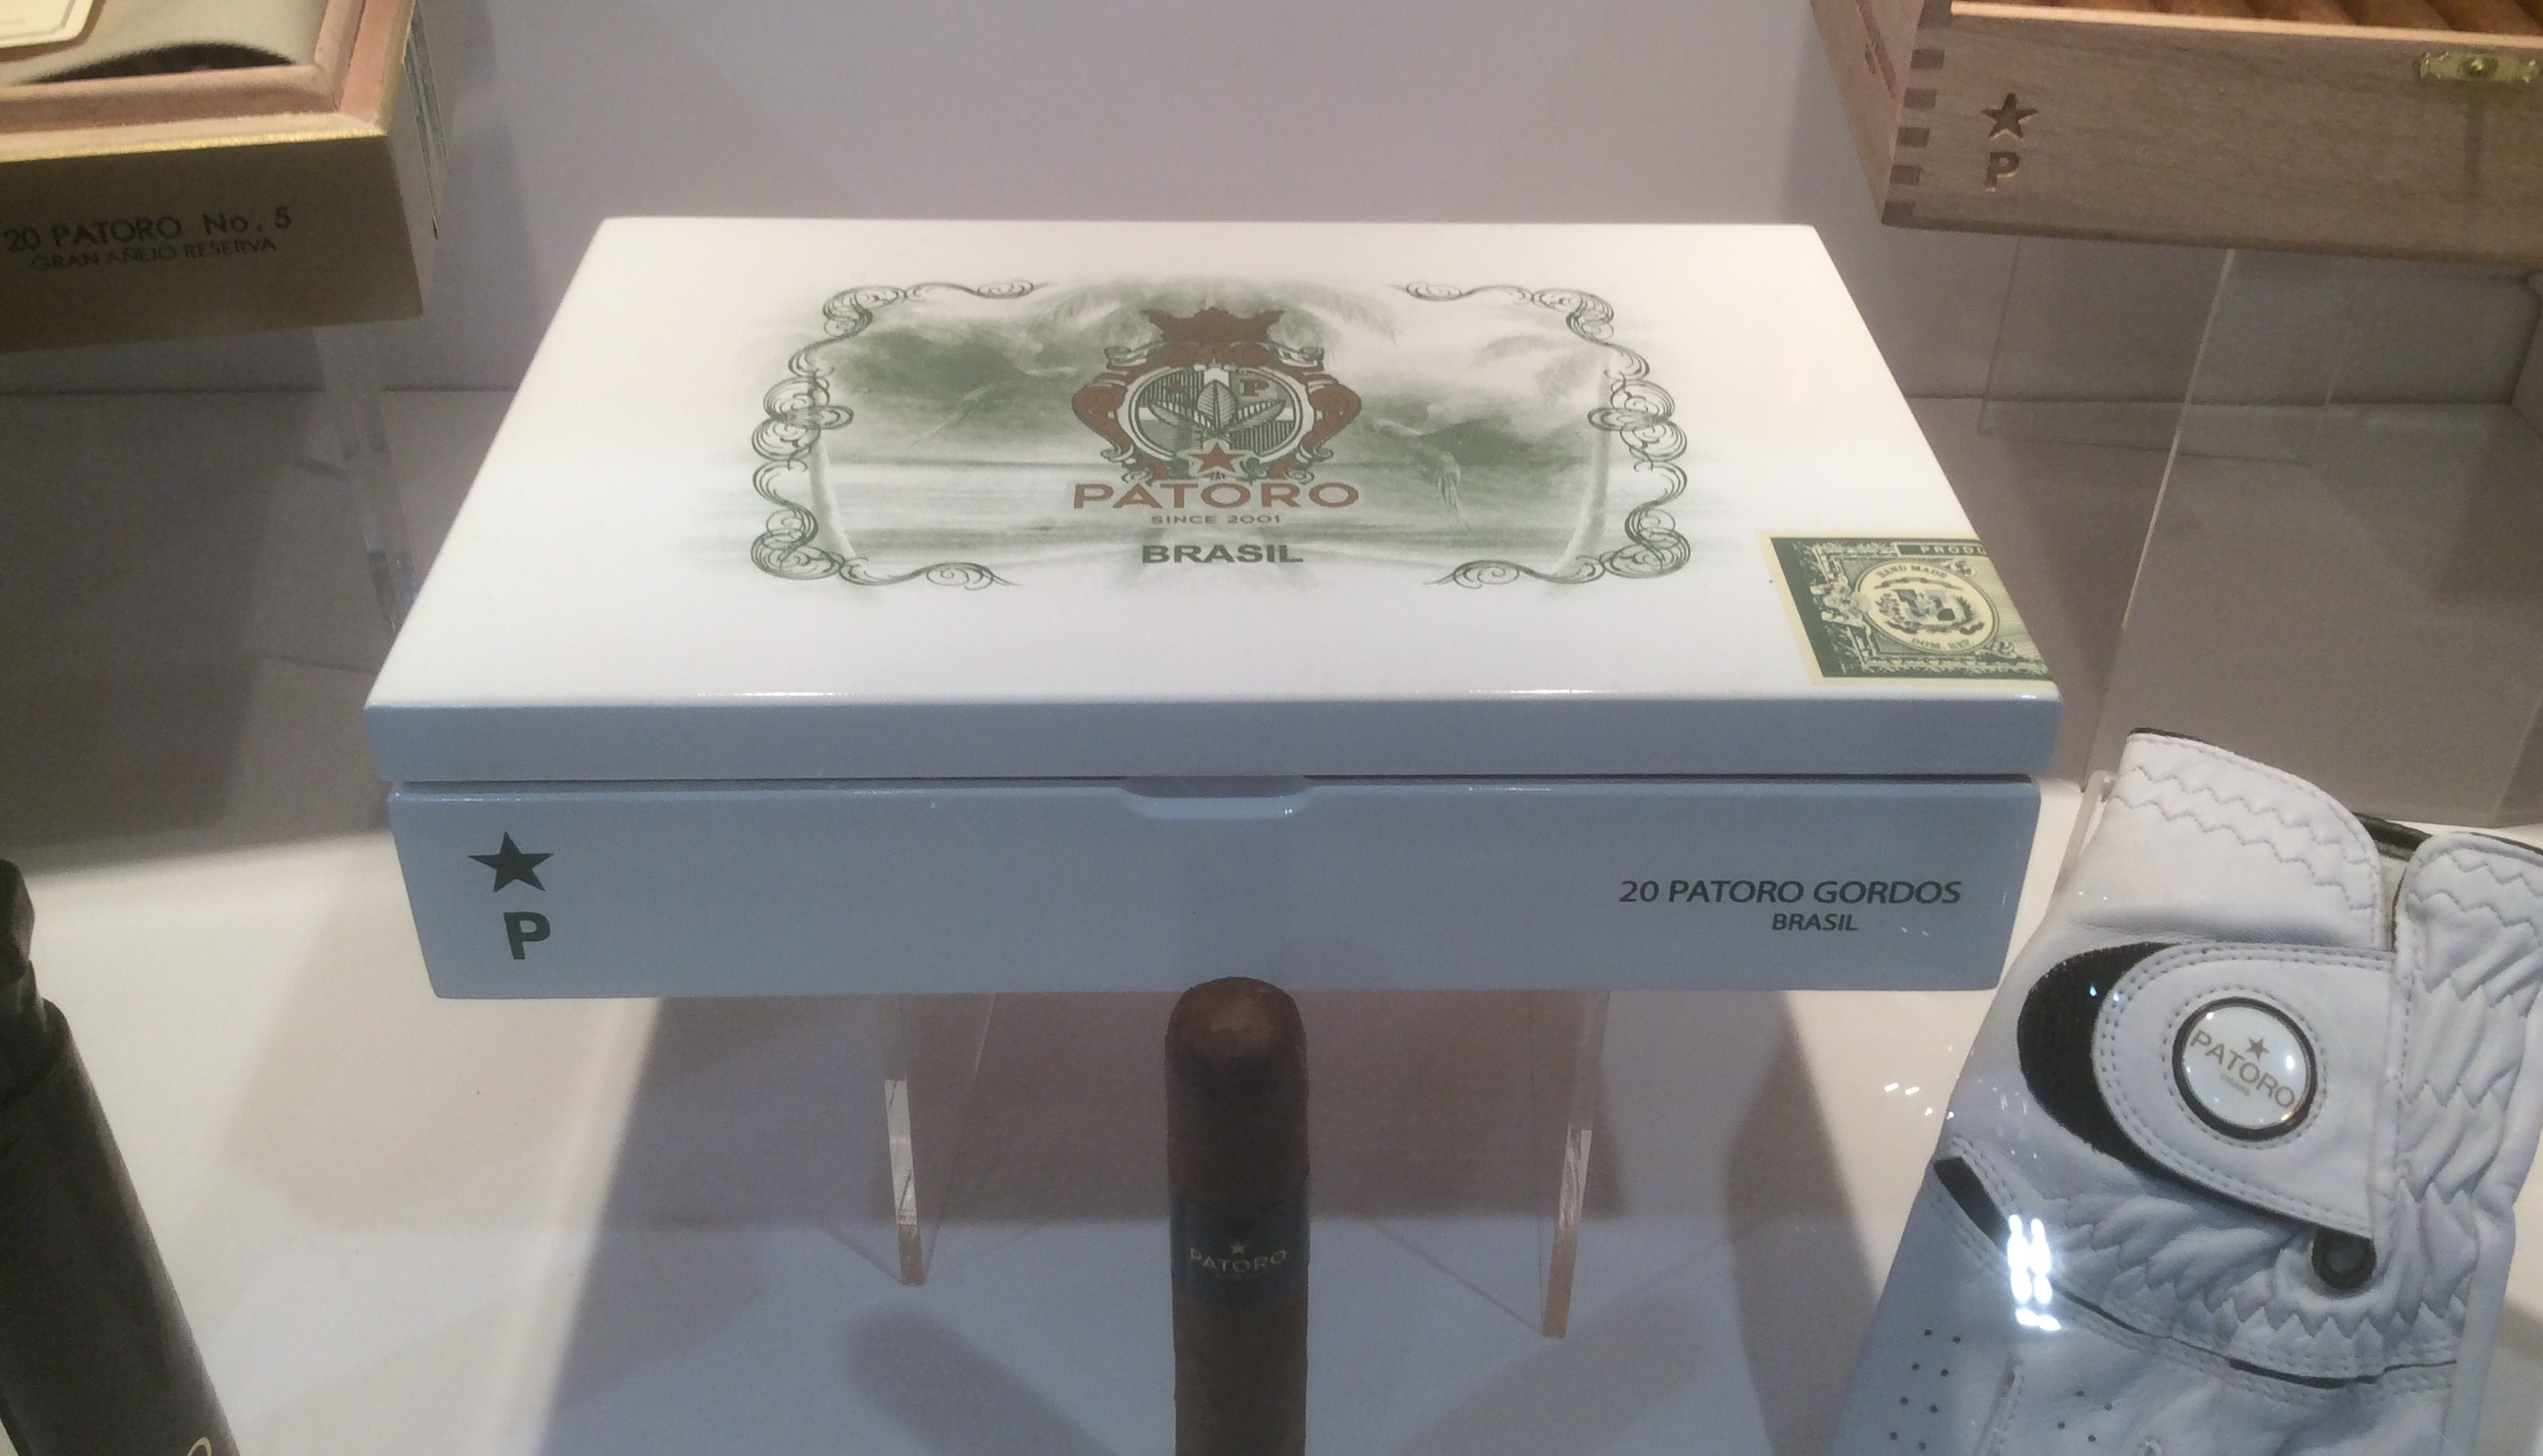 Cigar News: Patoro Brasil Launched for U.S. at 2016 IPCPR